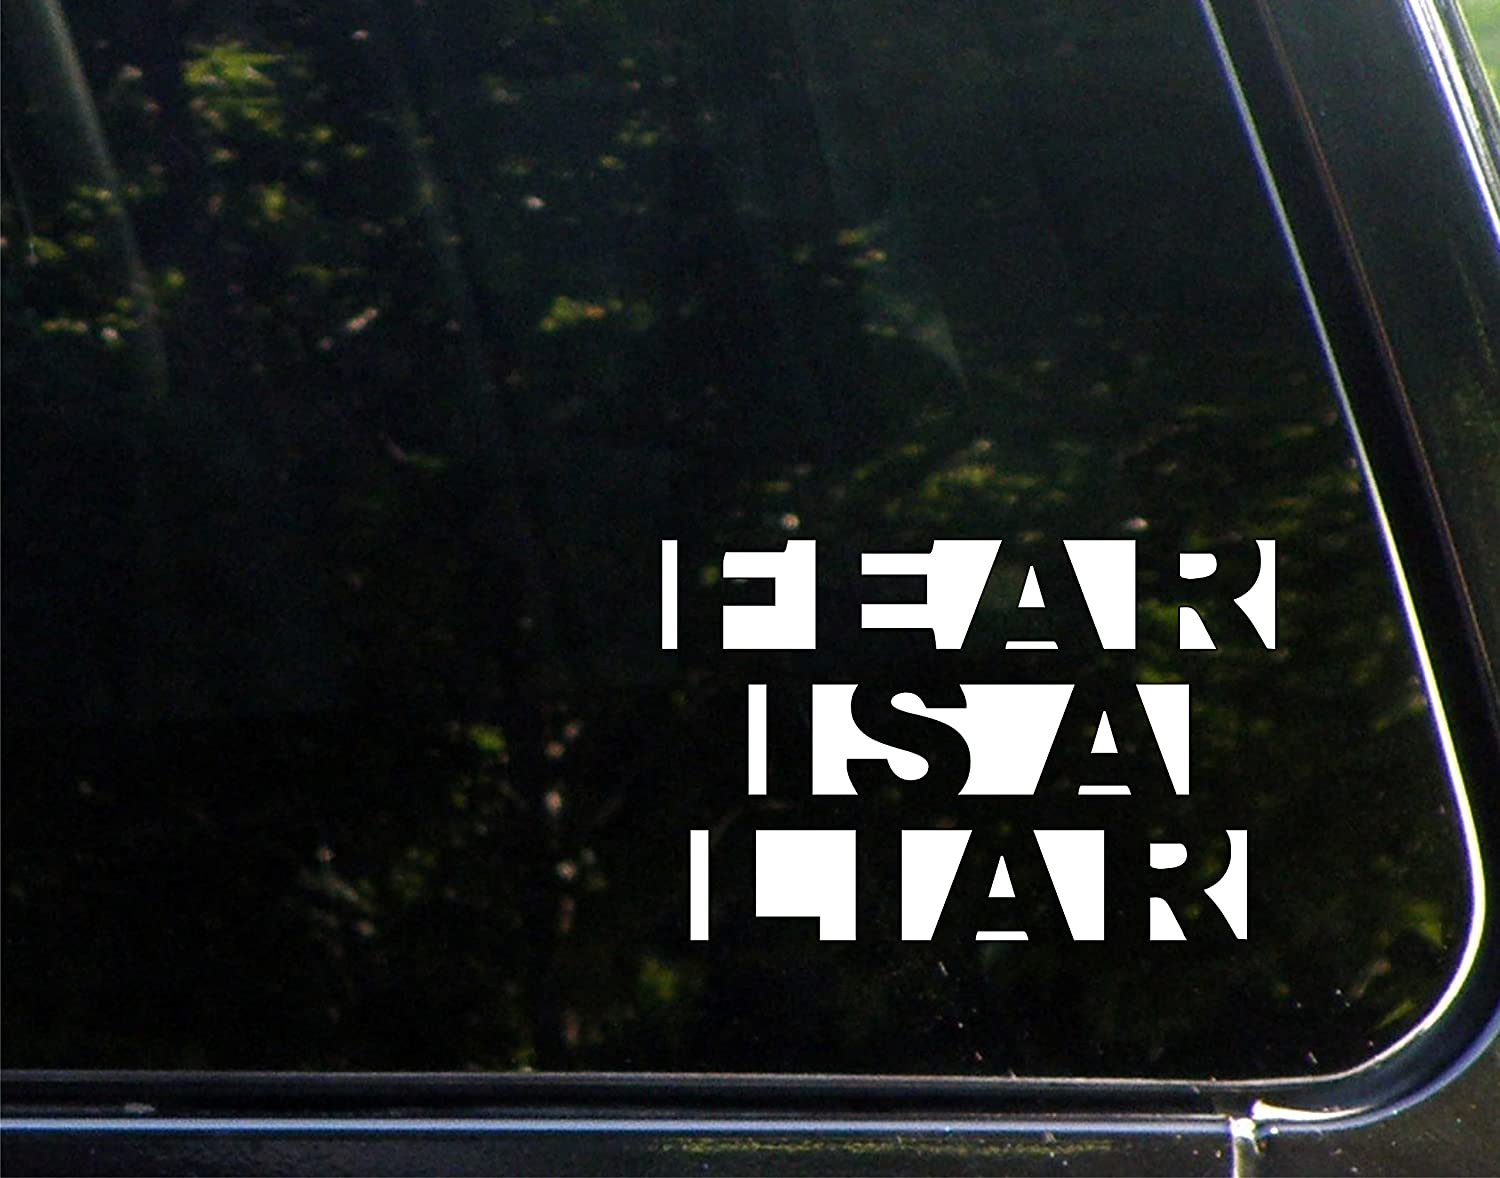 """Vinyl Productions Fear is A Liar - 5-3/4"""" x 3-3/4"""" - Decal Sticker for Cell Phones,Windows, Bumpers, Laptops, Glassware etc."""